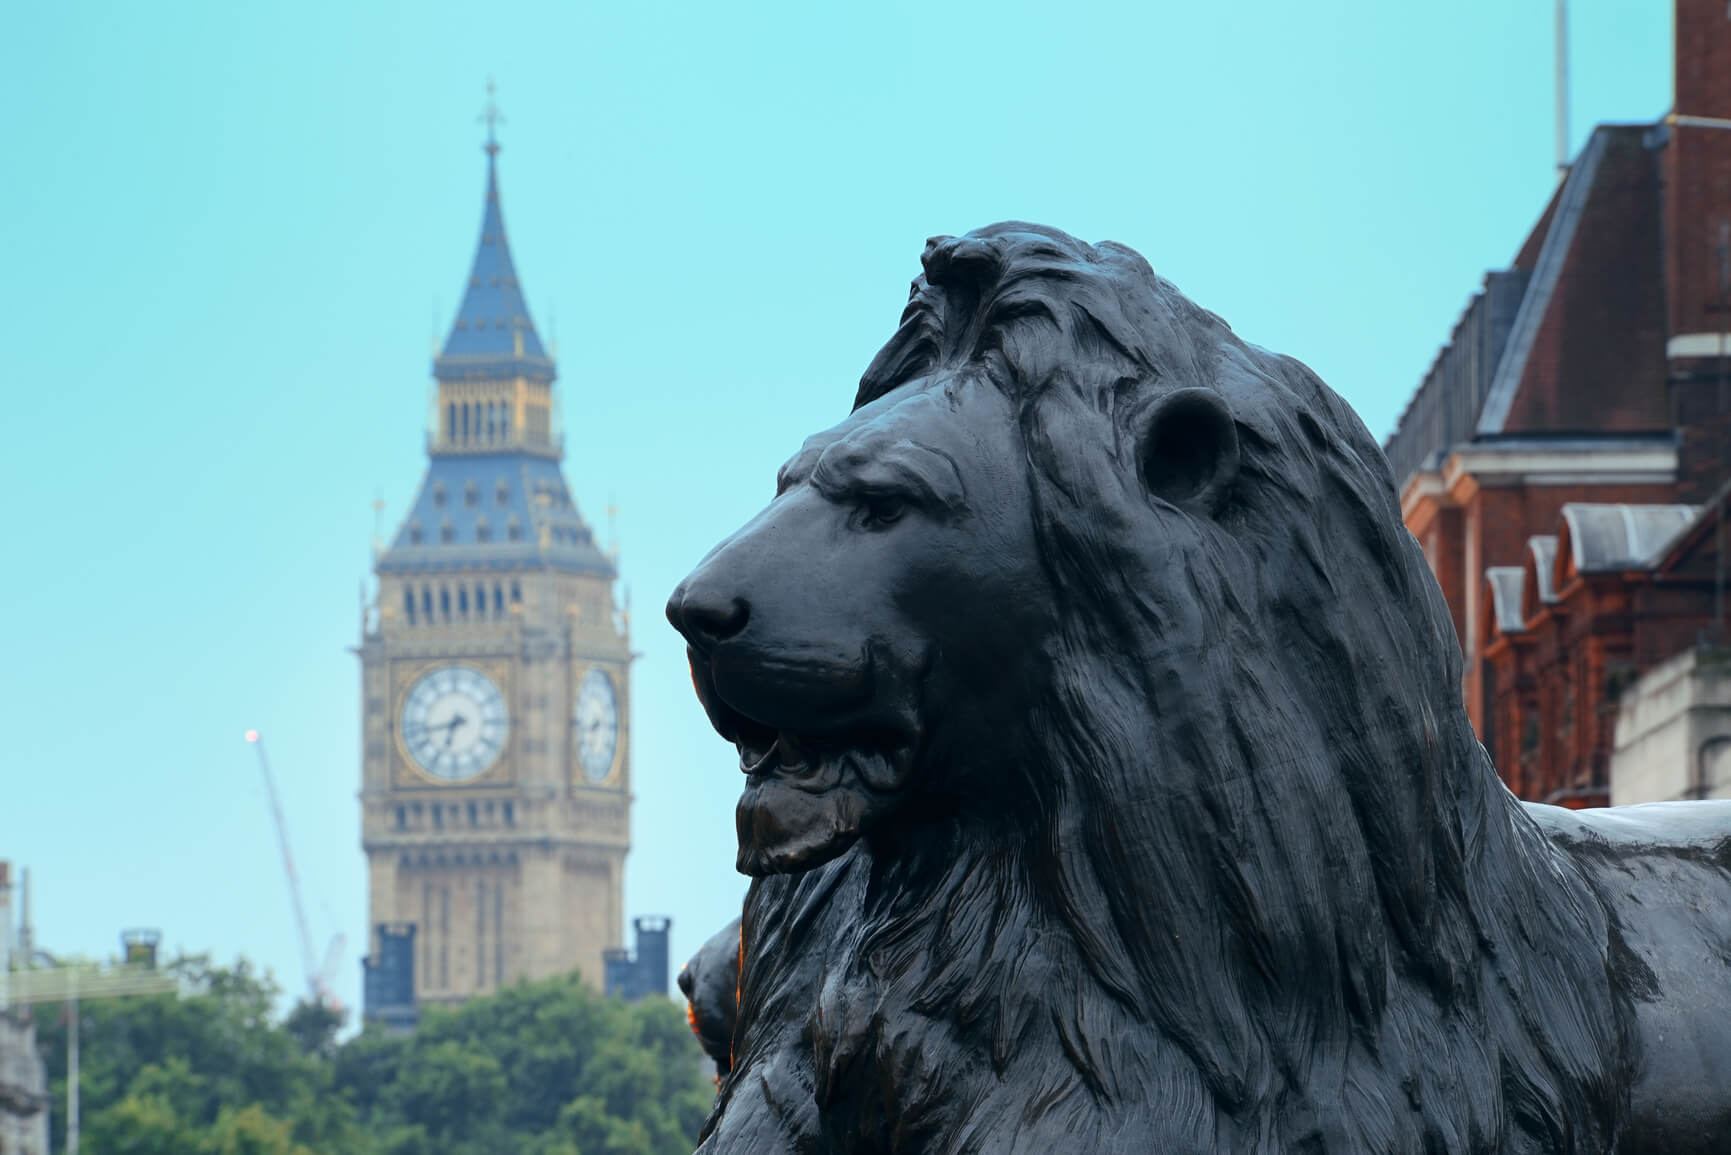 Non-stop from Calgary, Canada to London, UK for only $228 CAD one-way (or $562 CAD roundtrip)